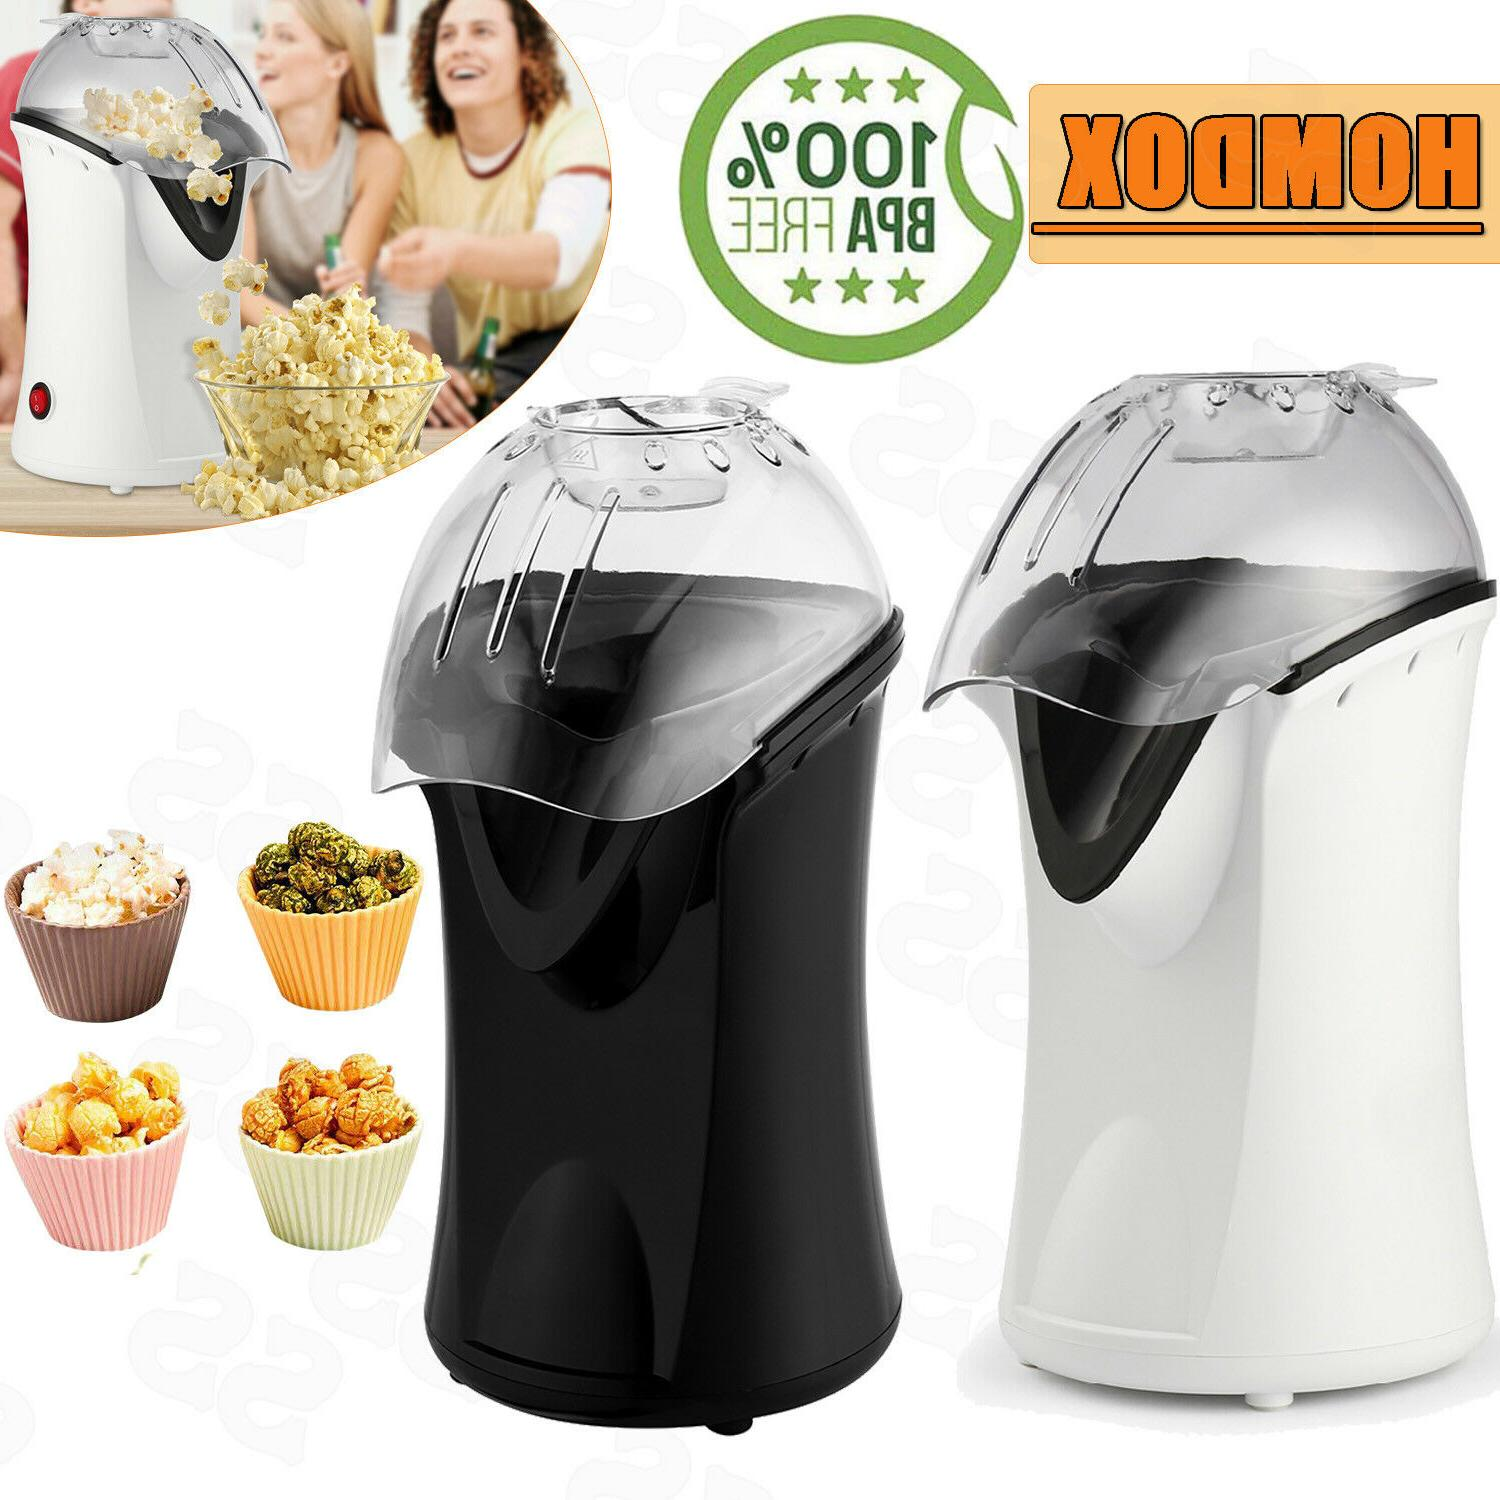 popcorn maker machine 1200w hot air popcorn